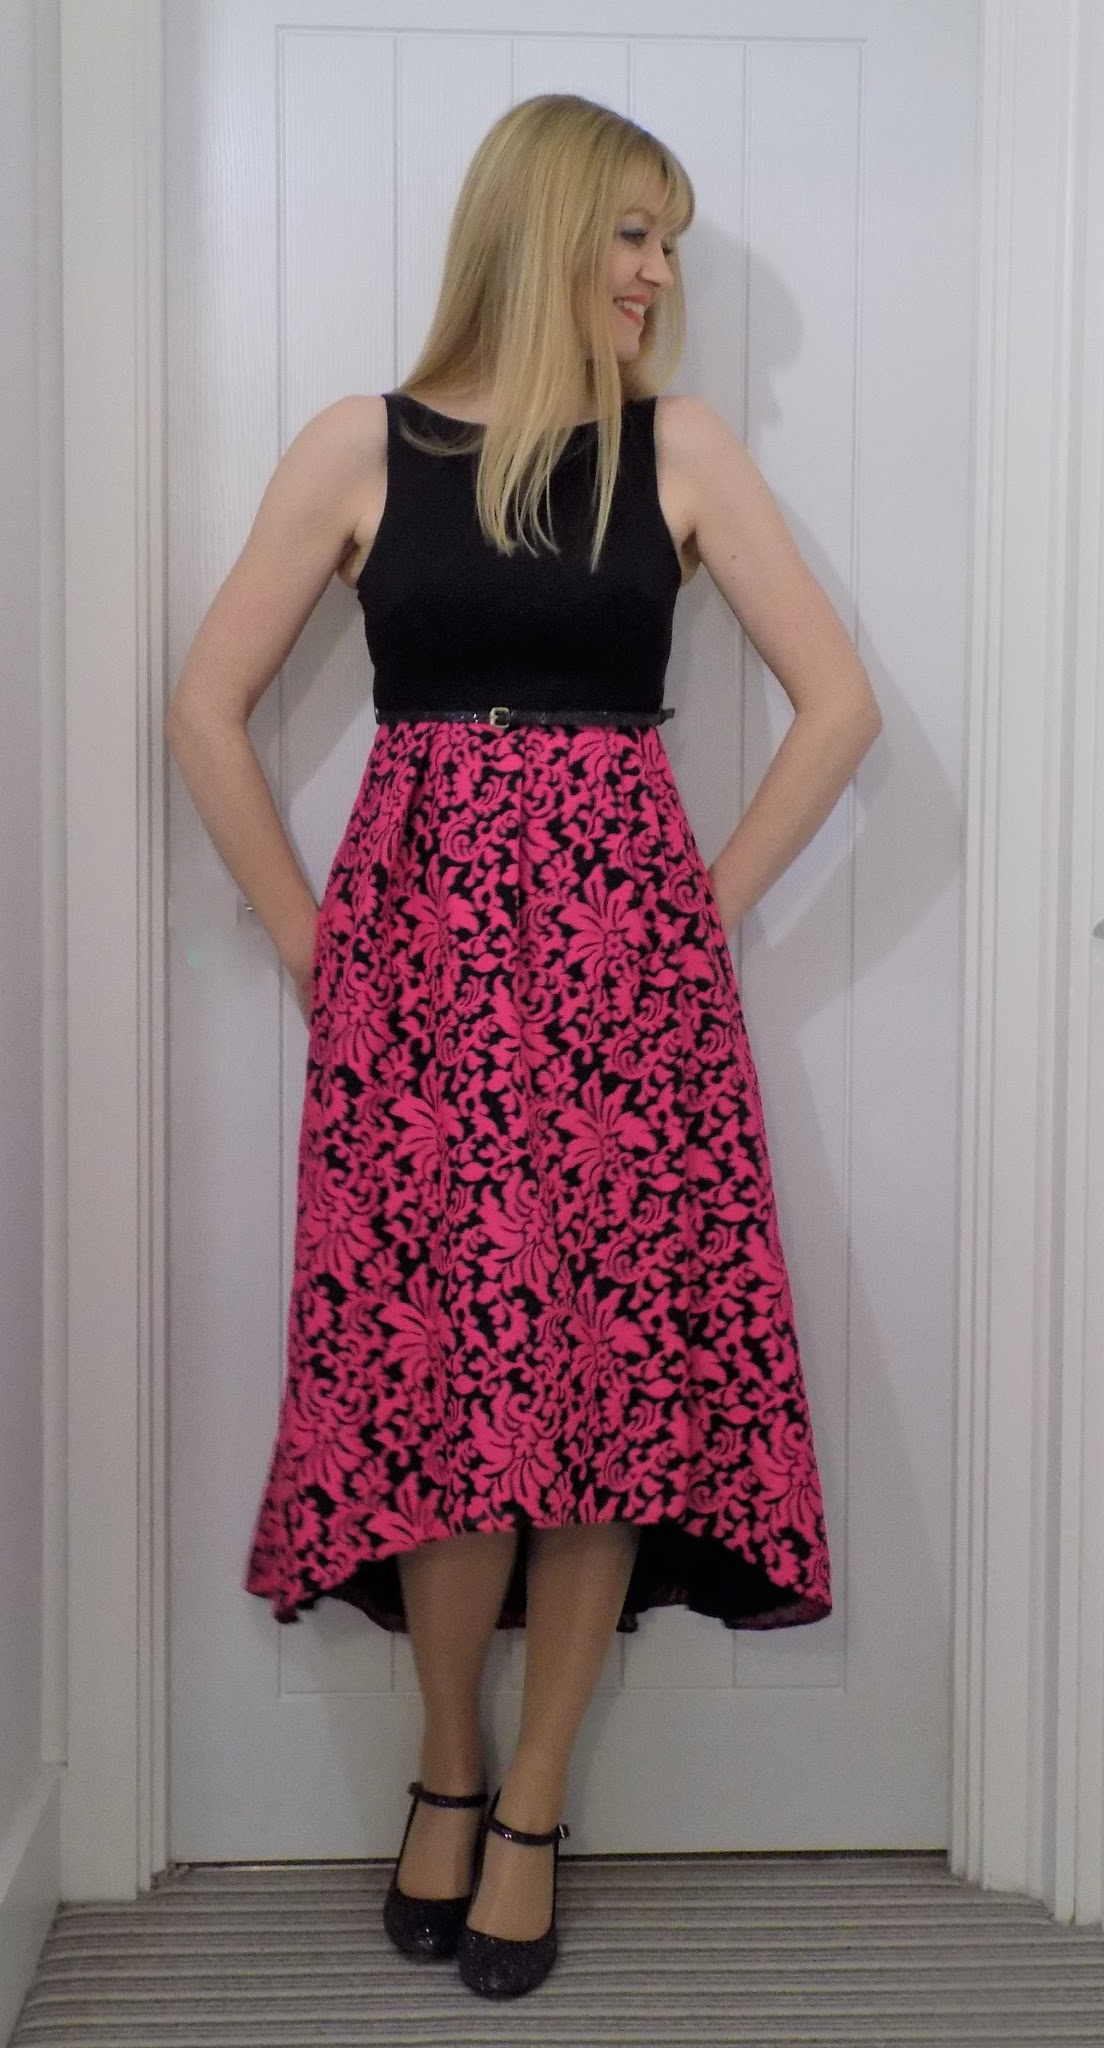 Coast Black party dress with bright pink dipped hem skirt